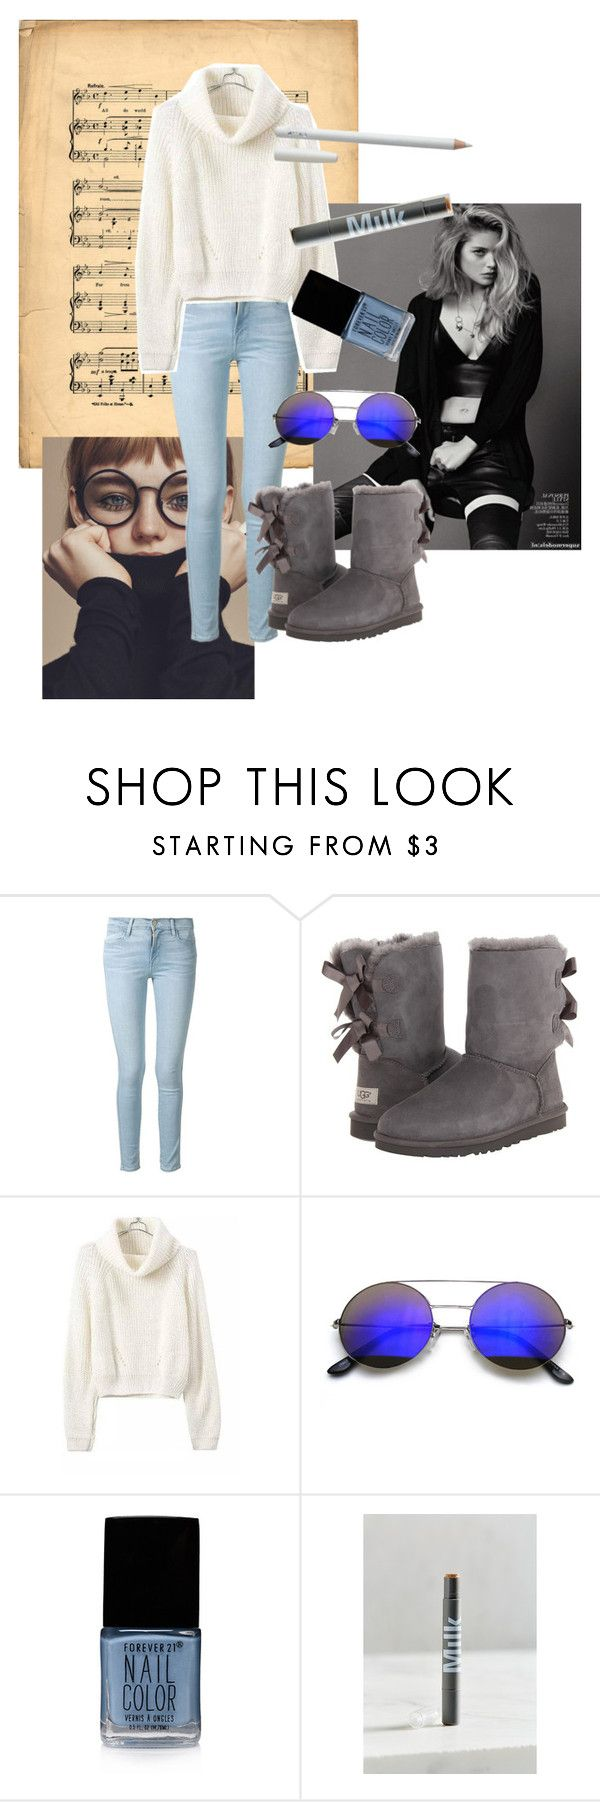 """Love these boots!"" by horsingaroundtomboy ❤ liked on Polyvore featuring Frame Denim, UGG Australia, Forever 21 and MILK MAKEUP"